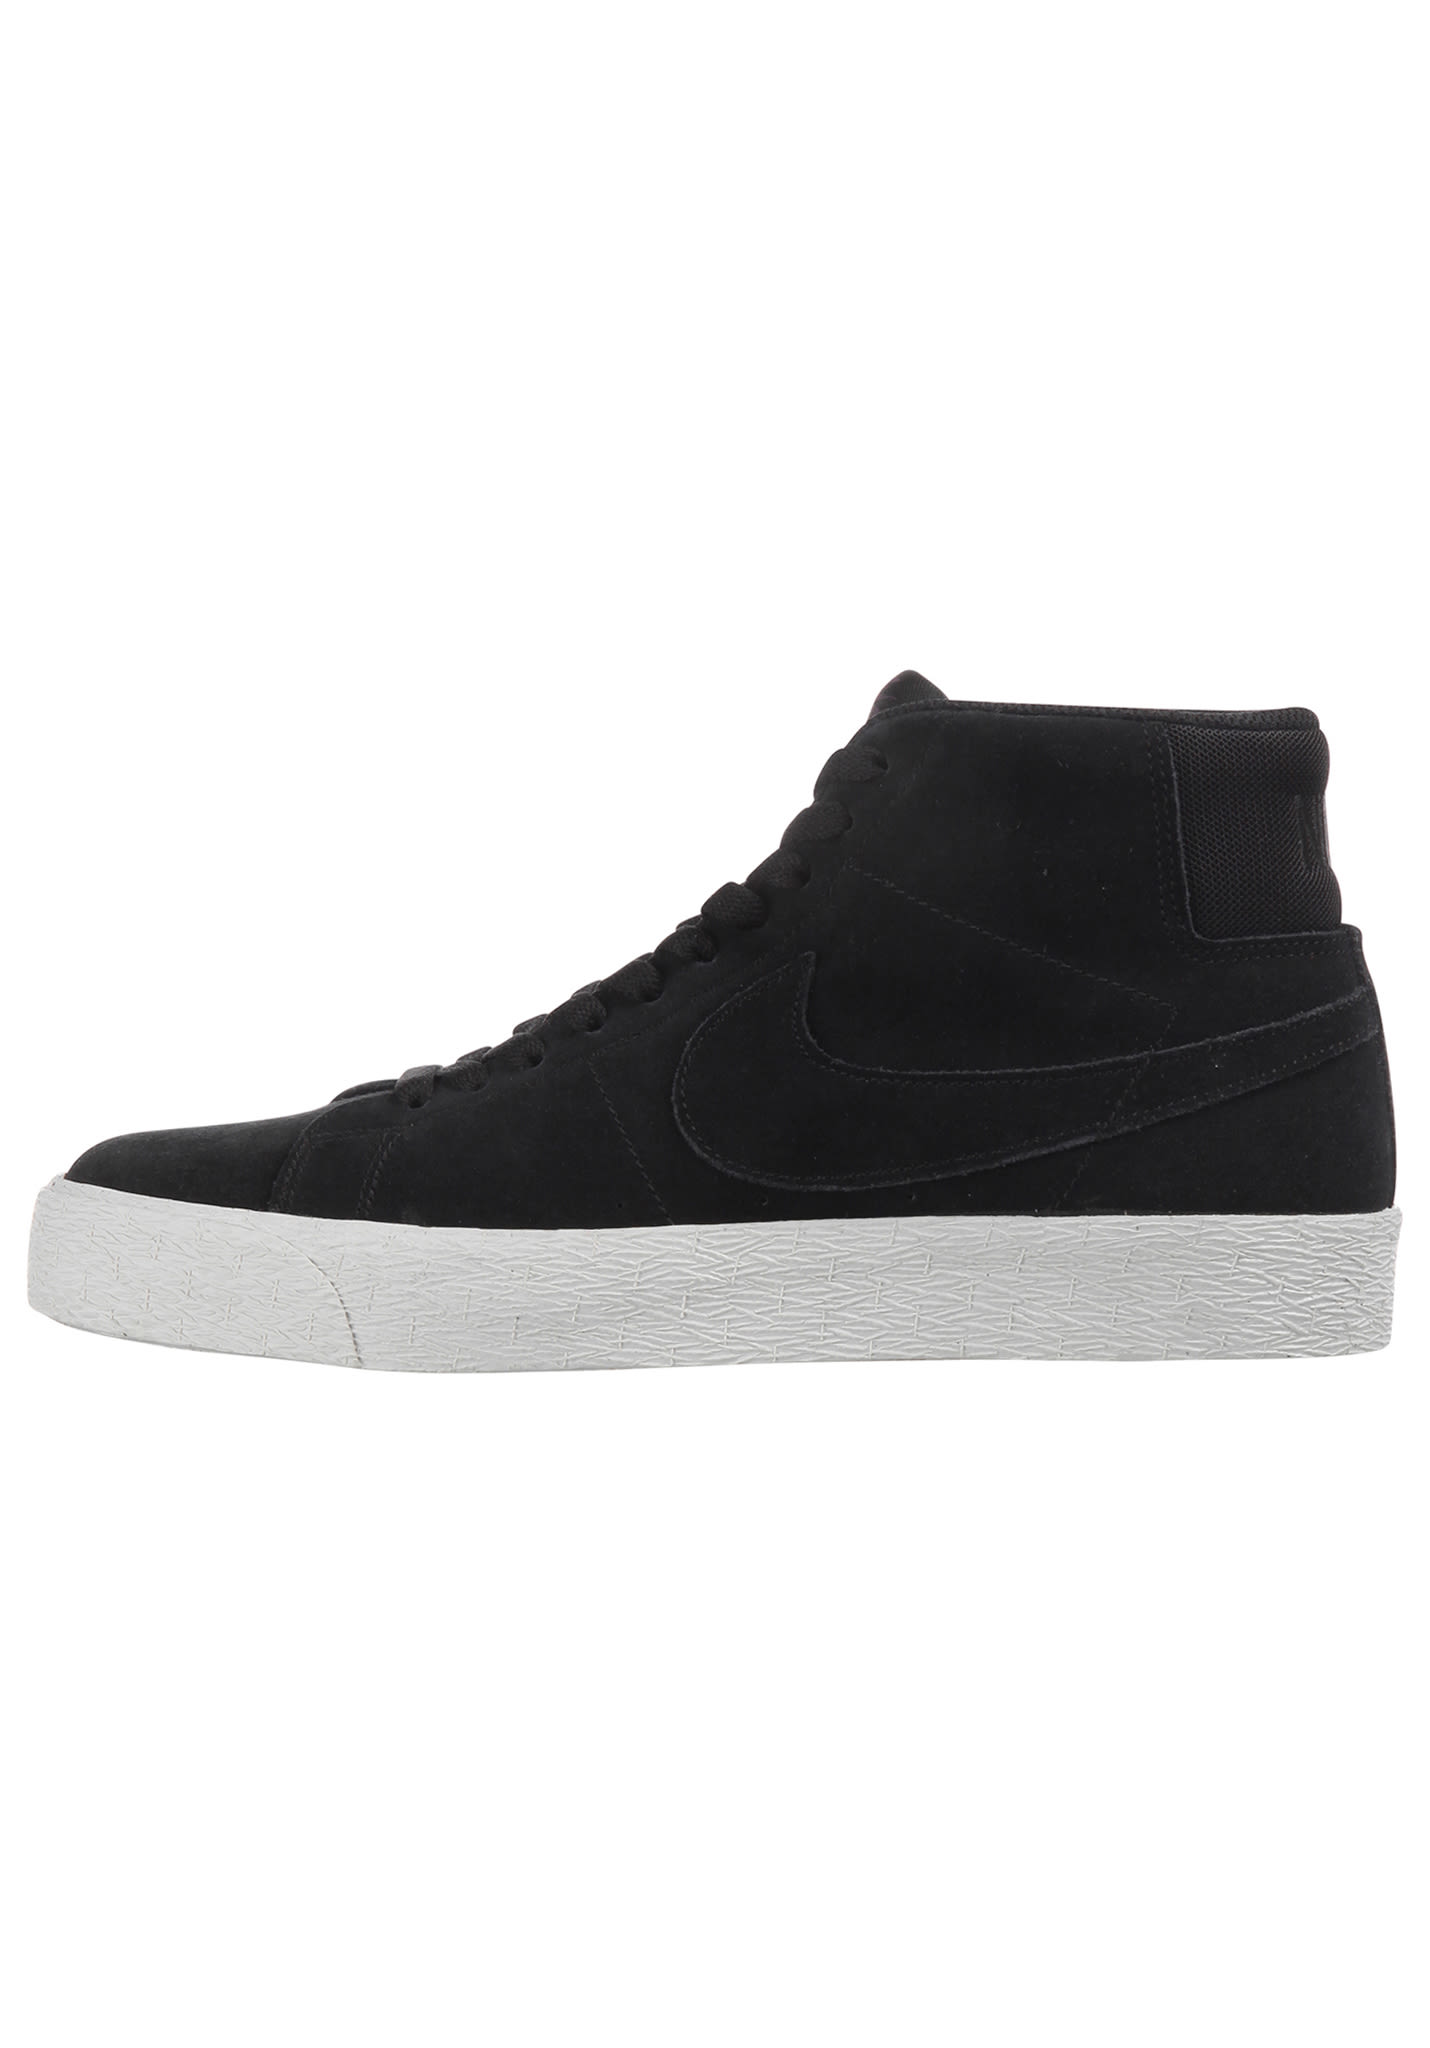 new concept 1b18d 2849a NIKE SB Zoom Blazer Mid Decon - Sneakers for Men - Black - Planet Sports